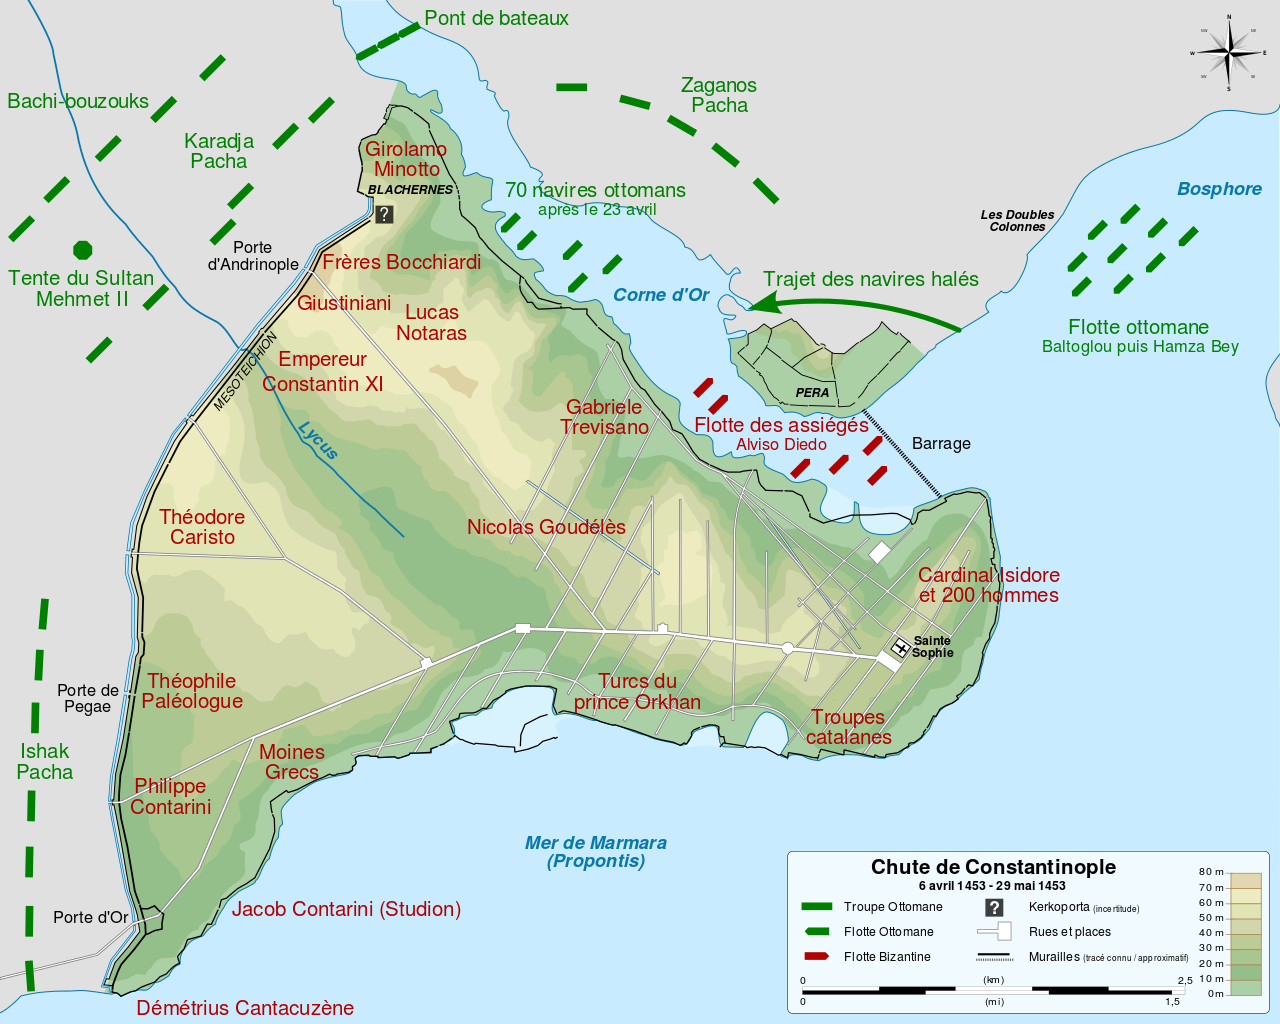 Siege_of_Constantinople_1453_map-svg.png